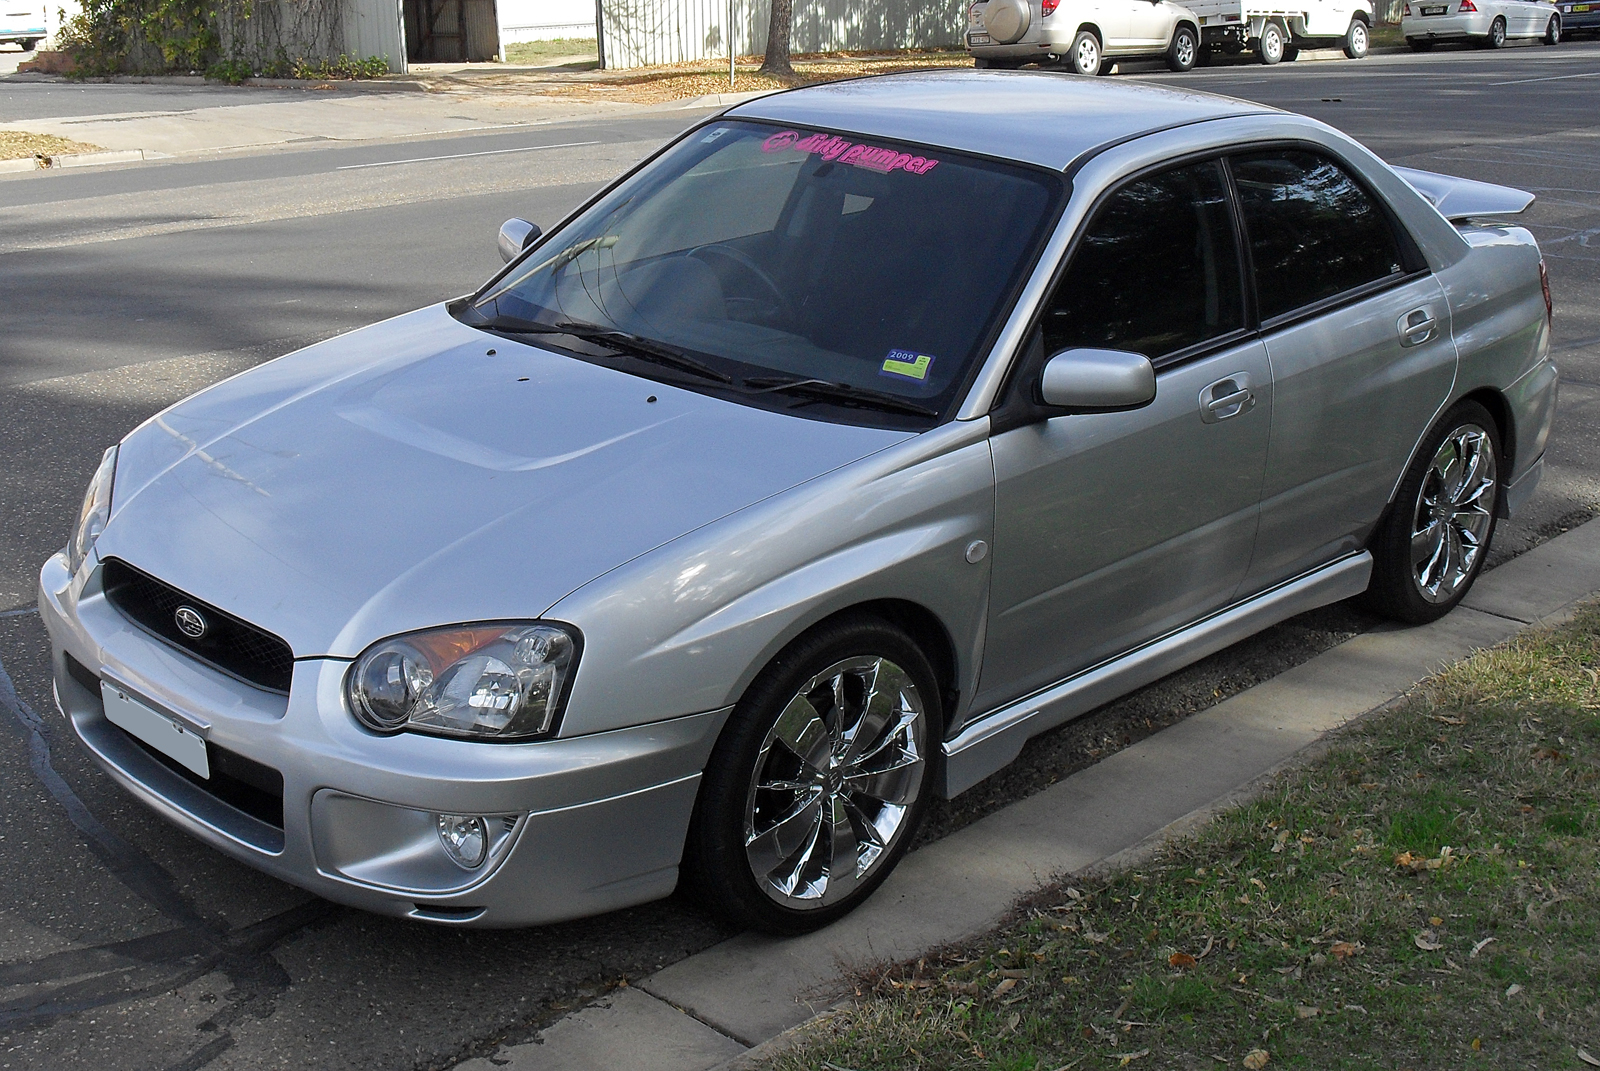 2004 subaru impreza information and photos zombiedrive. Black Bedroom Furniture Sets. Home Design Ideas